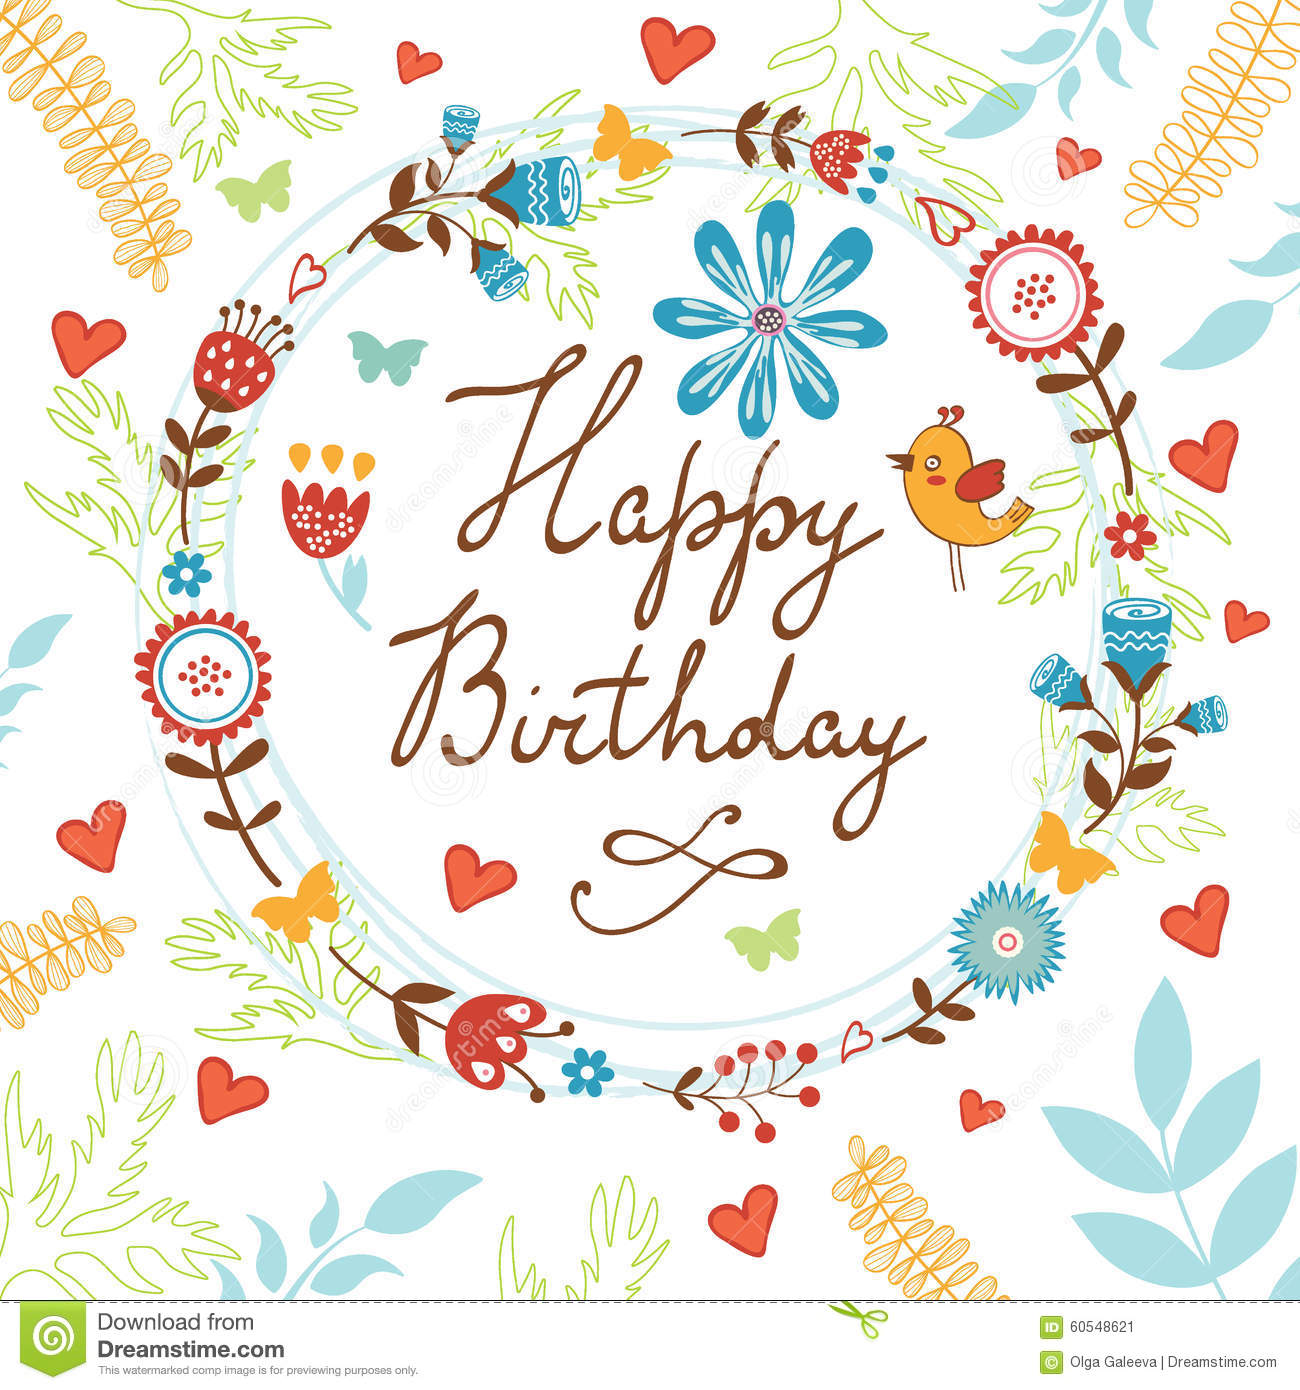 Happy Birthday Card With Flowers, Birds And Stock Vector